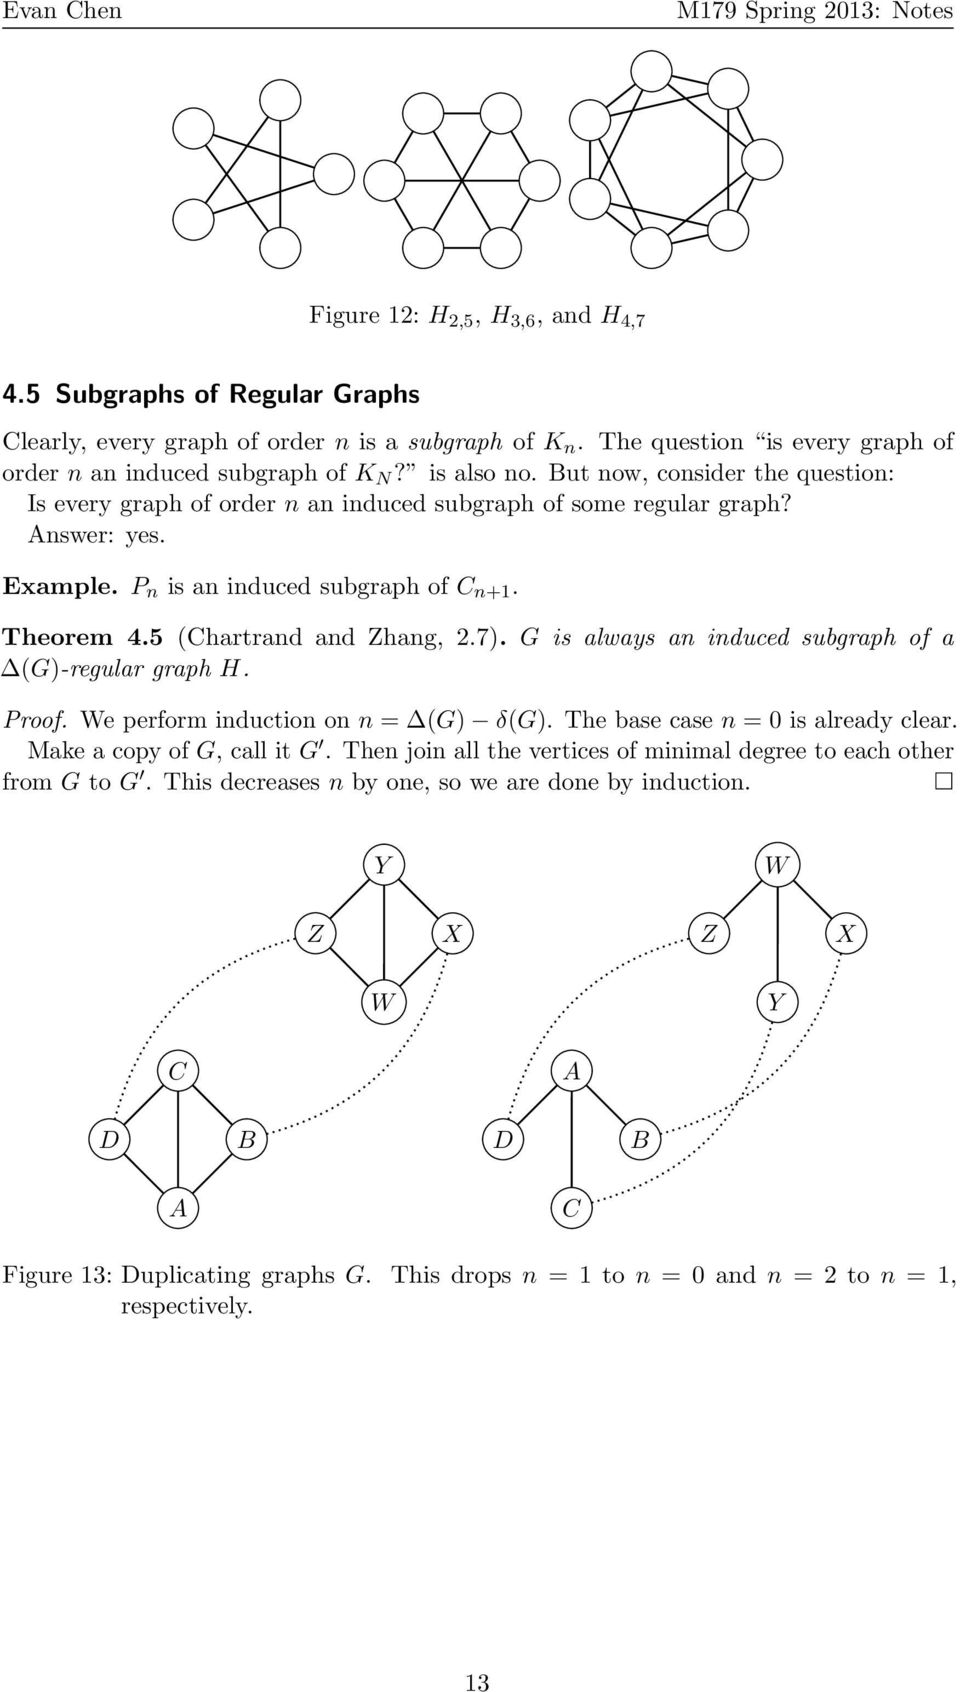 G is always an induced subgraph of a (G)-regular graph H. Proof. We perform induction on n = (G) δ(g). The base case n = 0 is already clear. Make a copy of G, call it G.